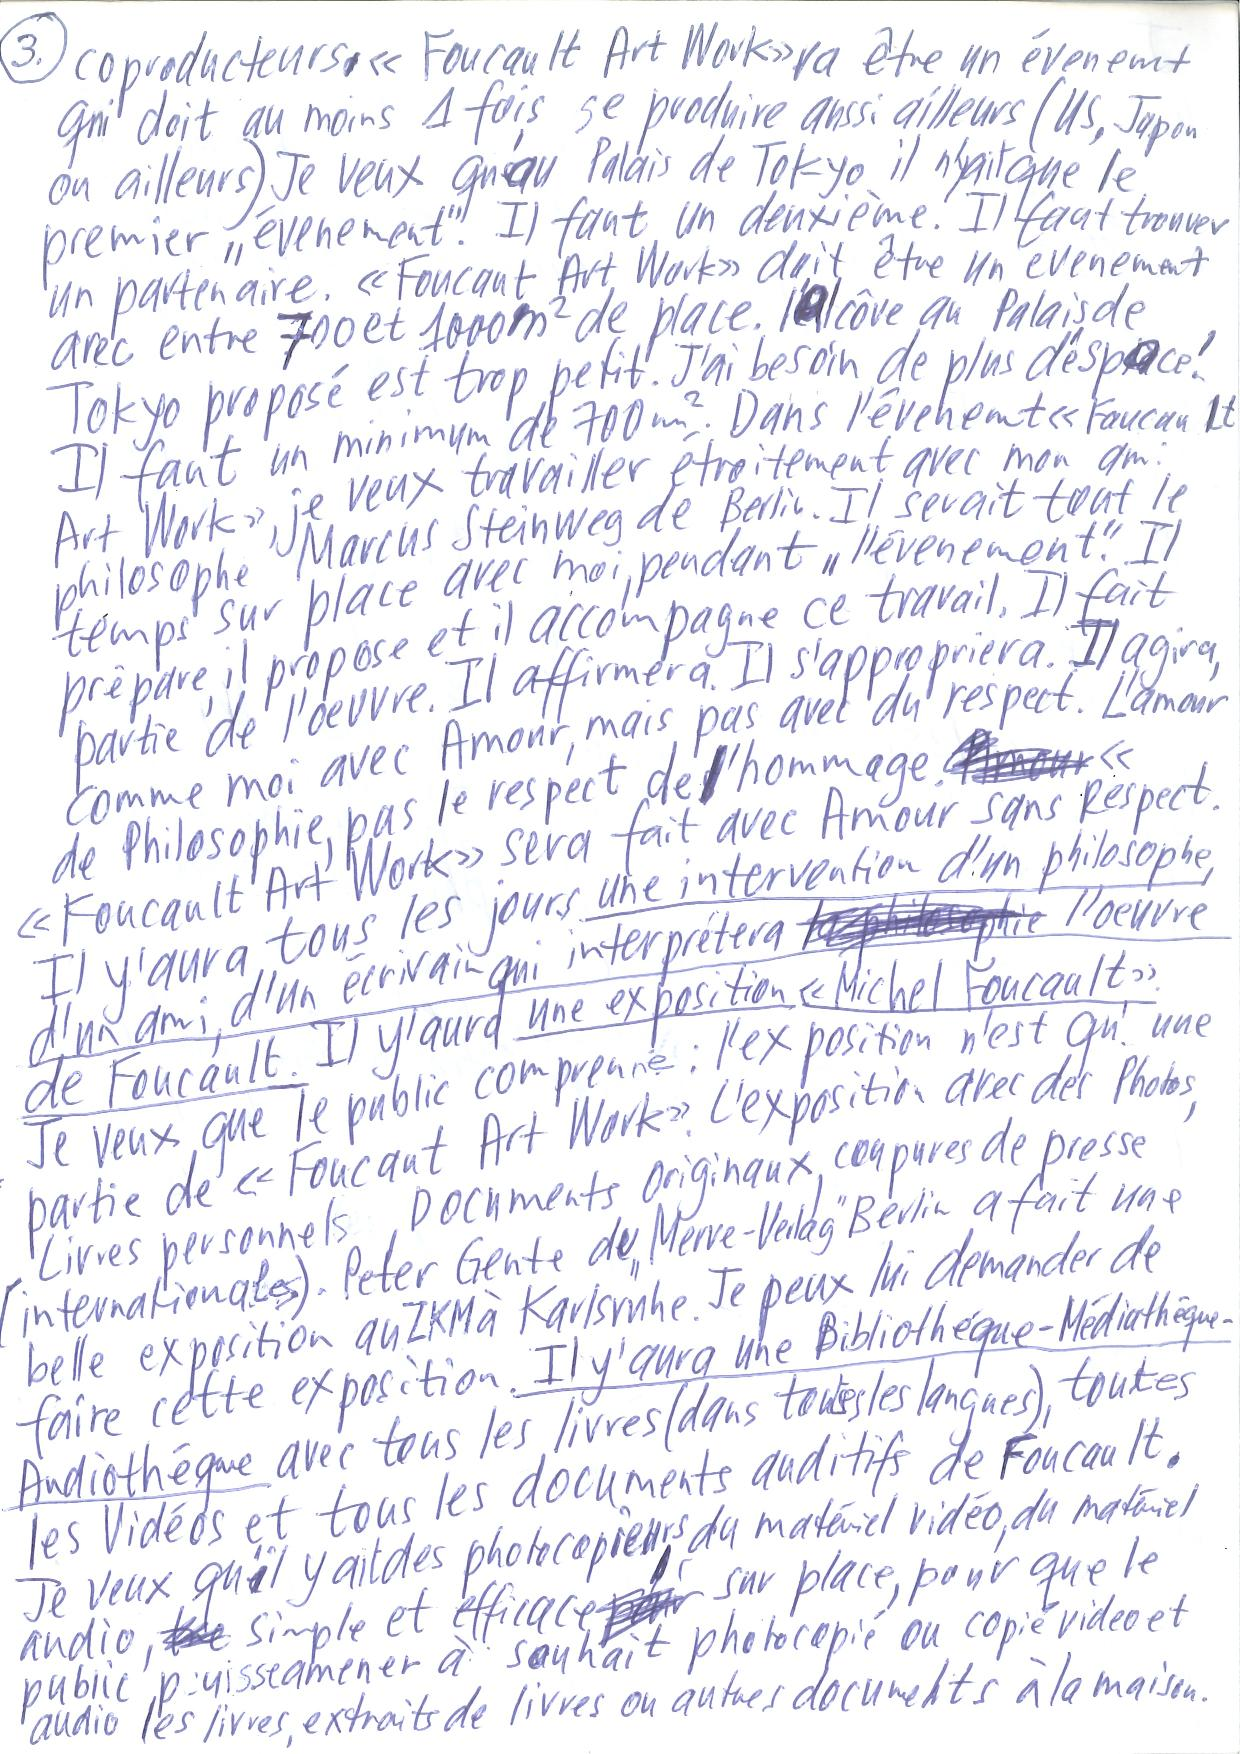 24H-Foucault_Note d'intention_2004 (4)